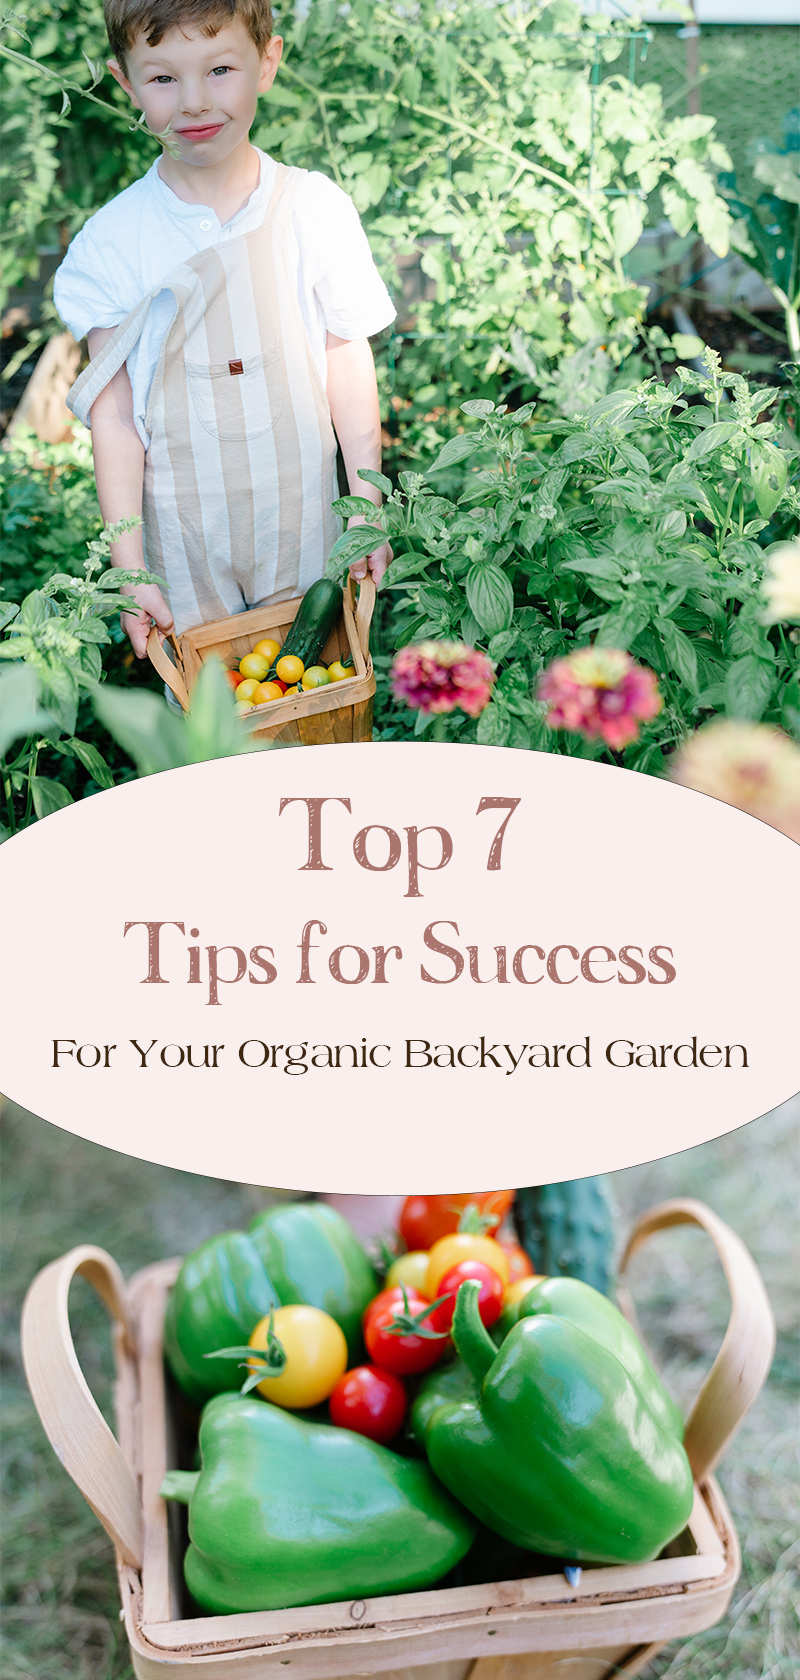 Top-7-Tips-For-Success-Organic-Backyard-Garden